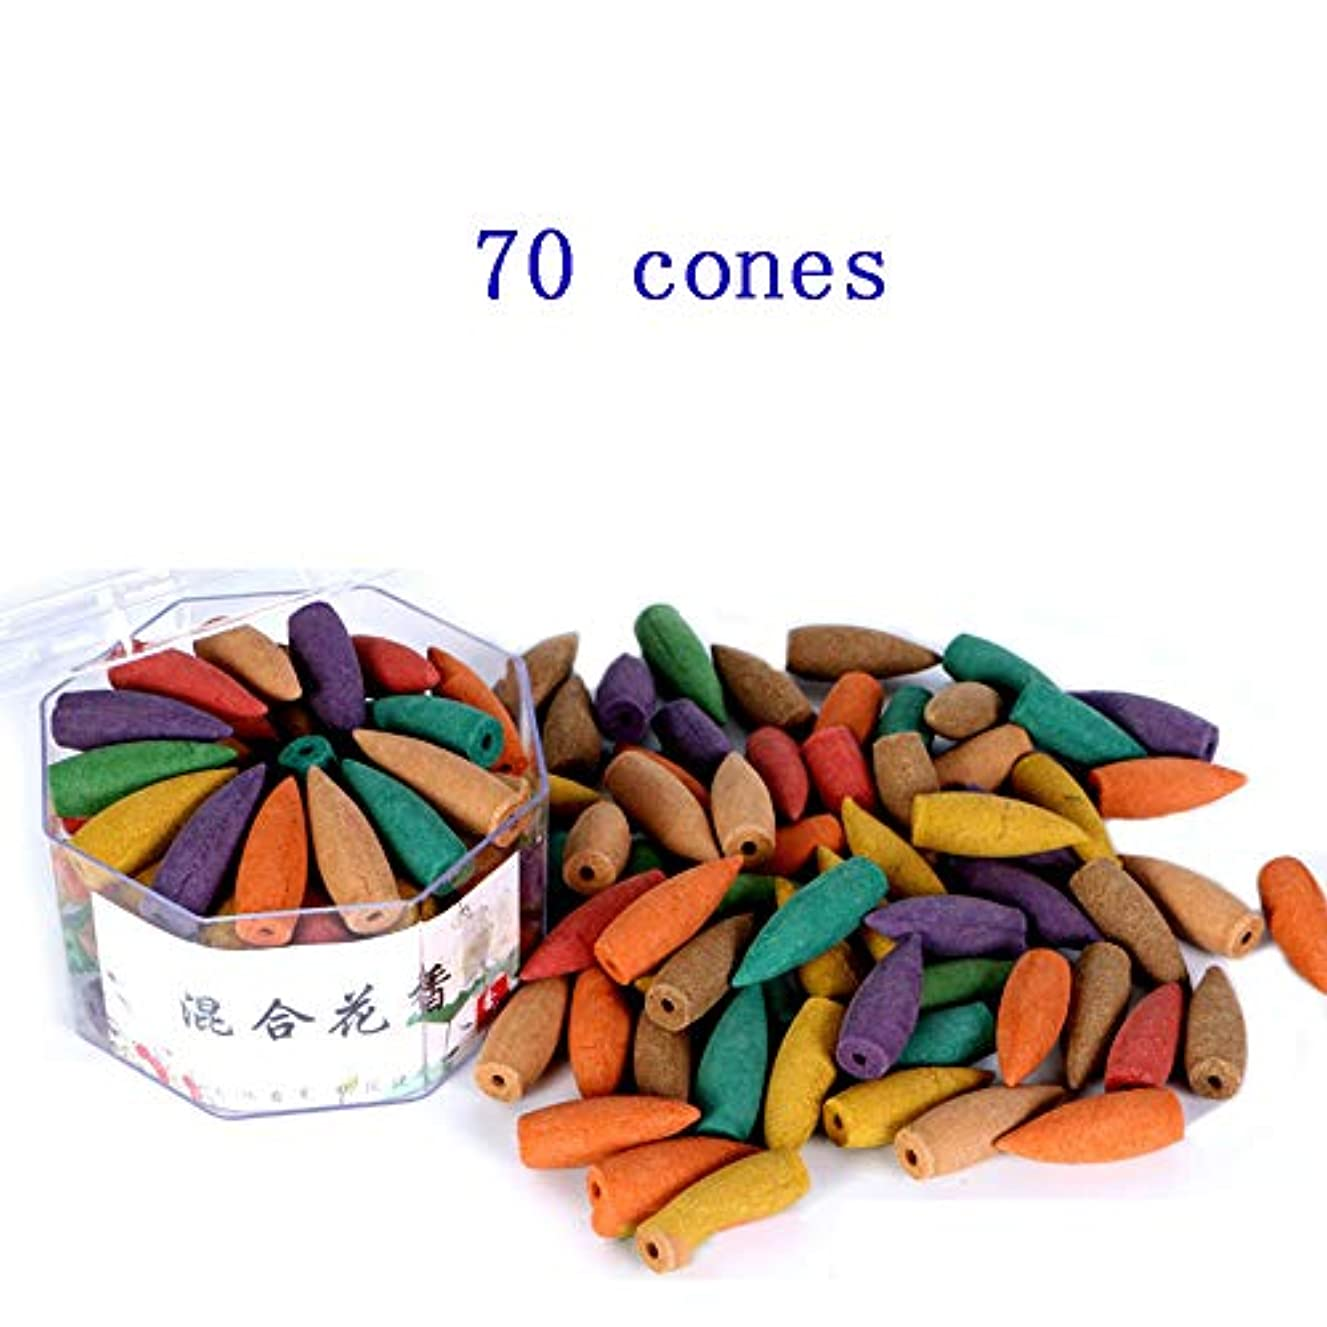 南極コミット障害(In-70mixed) - Corcio 70pcs/box Lengthened Cone Tower Incense Backflow Incense Waterfall Cones for Incense Burner...